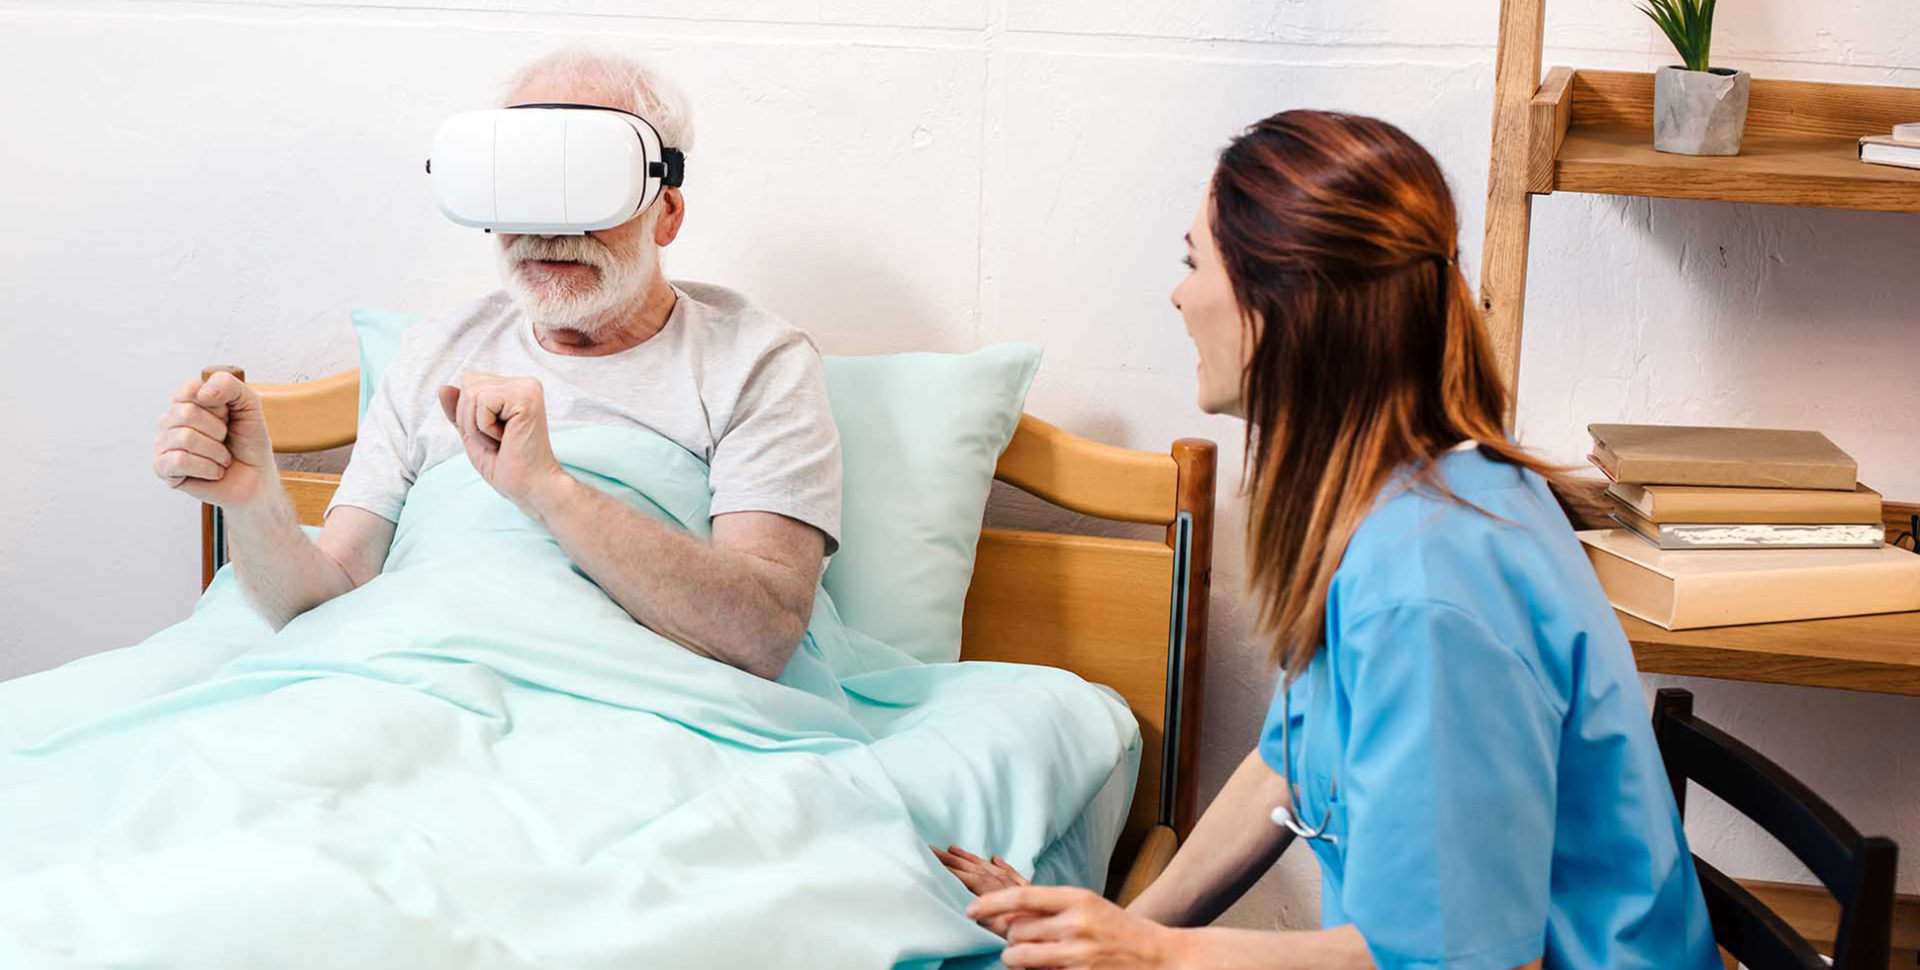 Augmented Reality (AR) & Virtual Reality (VR) in Healthcare Market To Incur High Value Growth At 30.2% CAGR By 2023